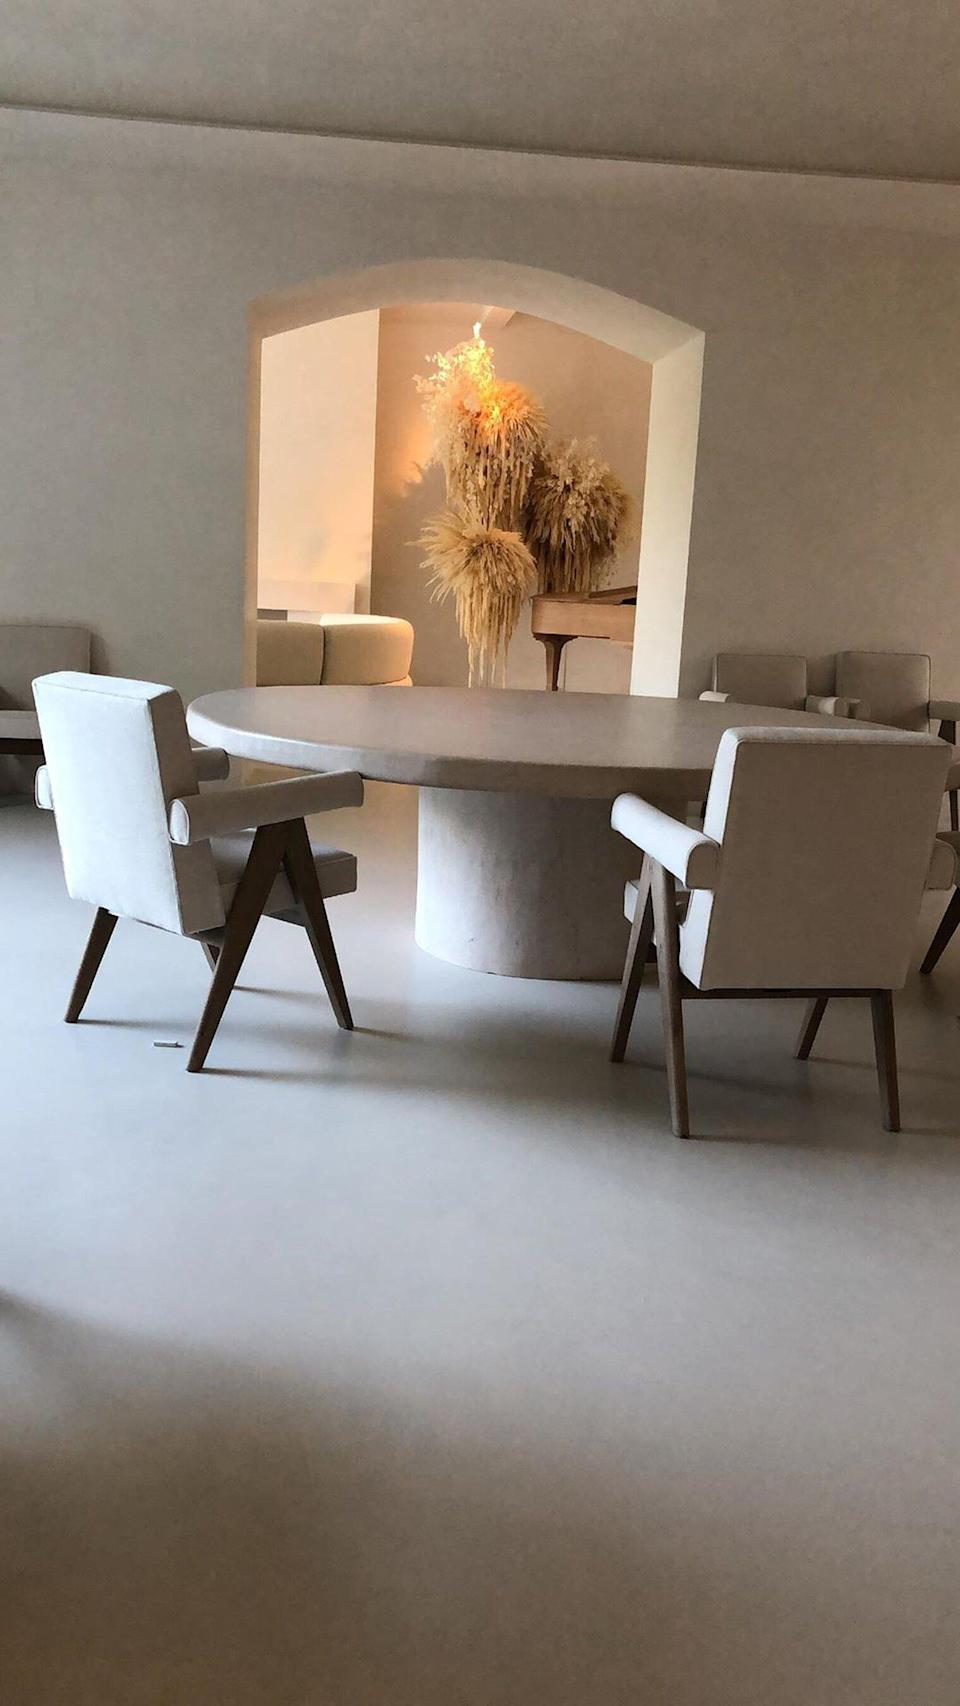 """Past views of this room depicted a<a href=""""https://people.com/home/kim-kardashian-kanye-west-photos-inside-home/?slide=6925610#6925610"""" rel=""""nofollow noopener"""" target=""""_blank"""" data-ylk=""""slk:headless mannequin in an empty hallway"""" class=""""link rapid-noclick-resp""""> headless mannequin in an empty hallway</a>, so it's nice to see the family add a fun and playful touch by adding neutral branches."""